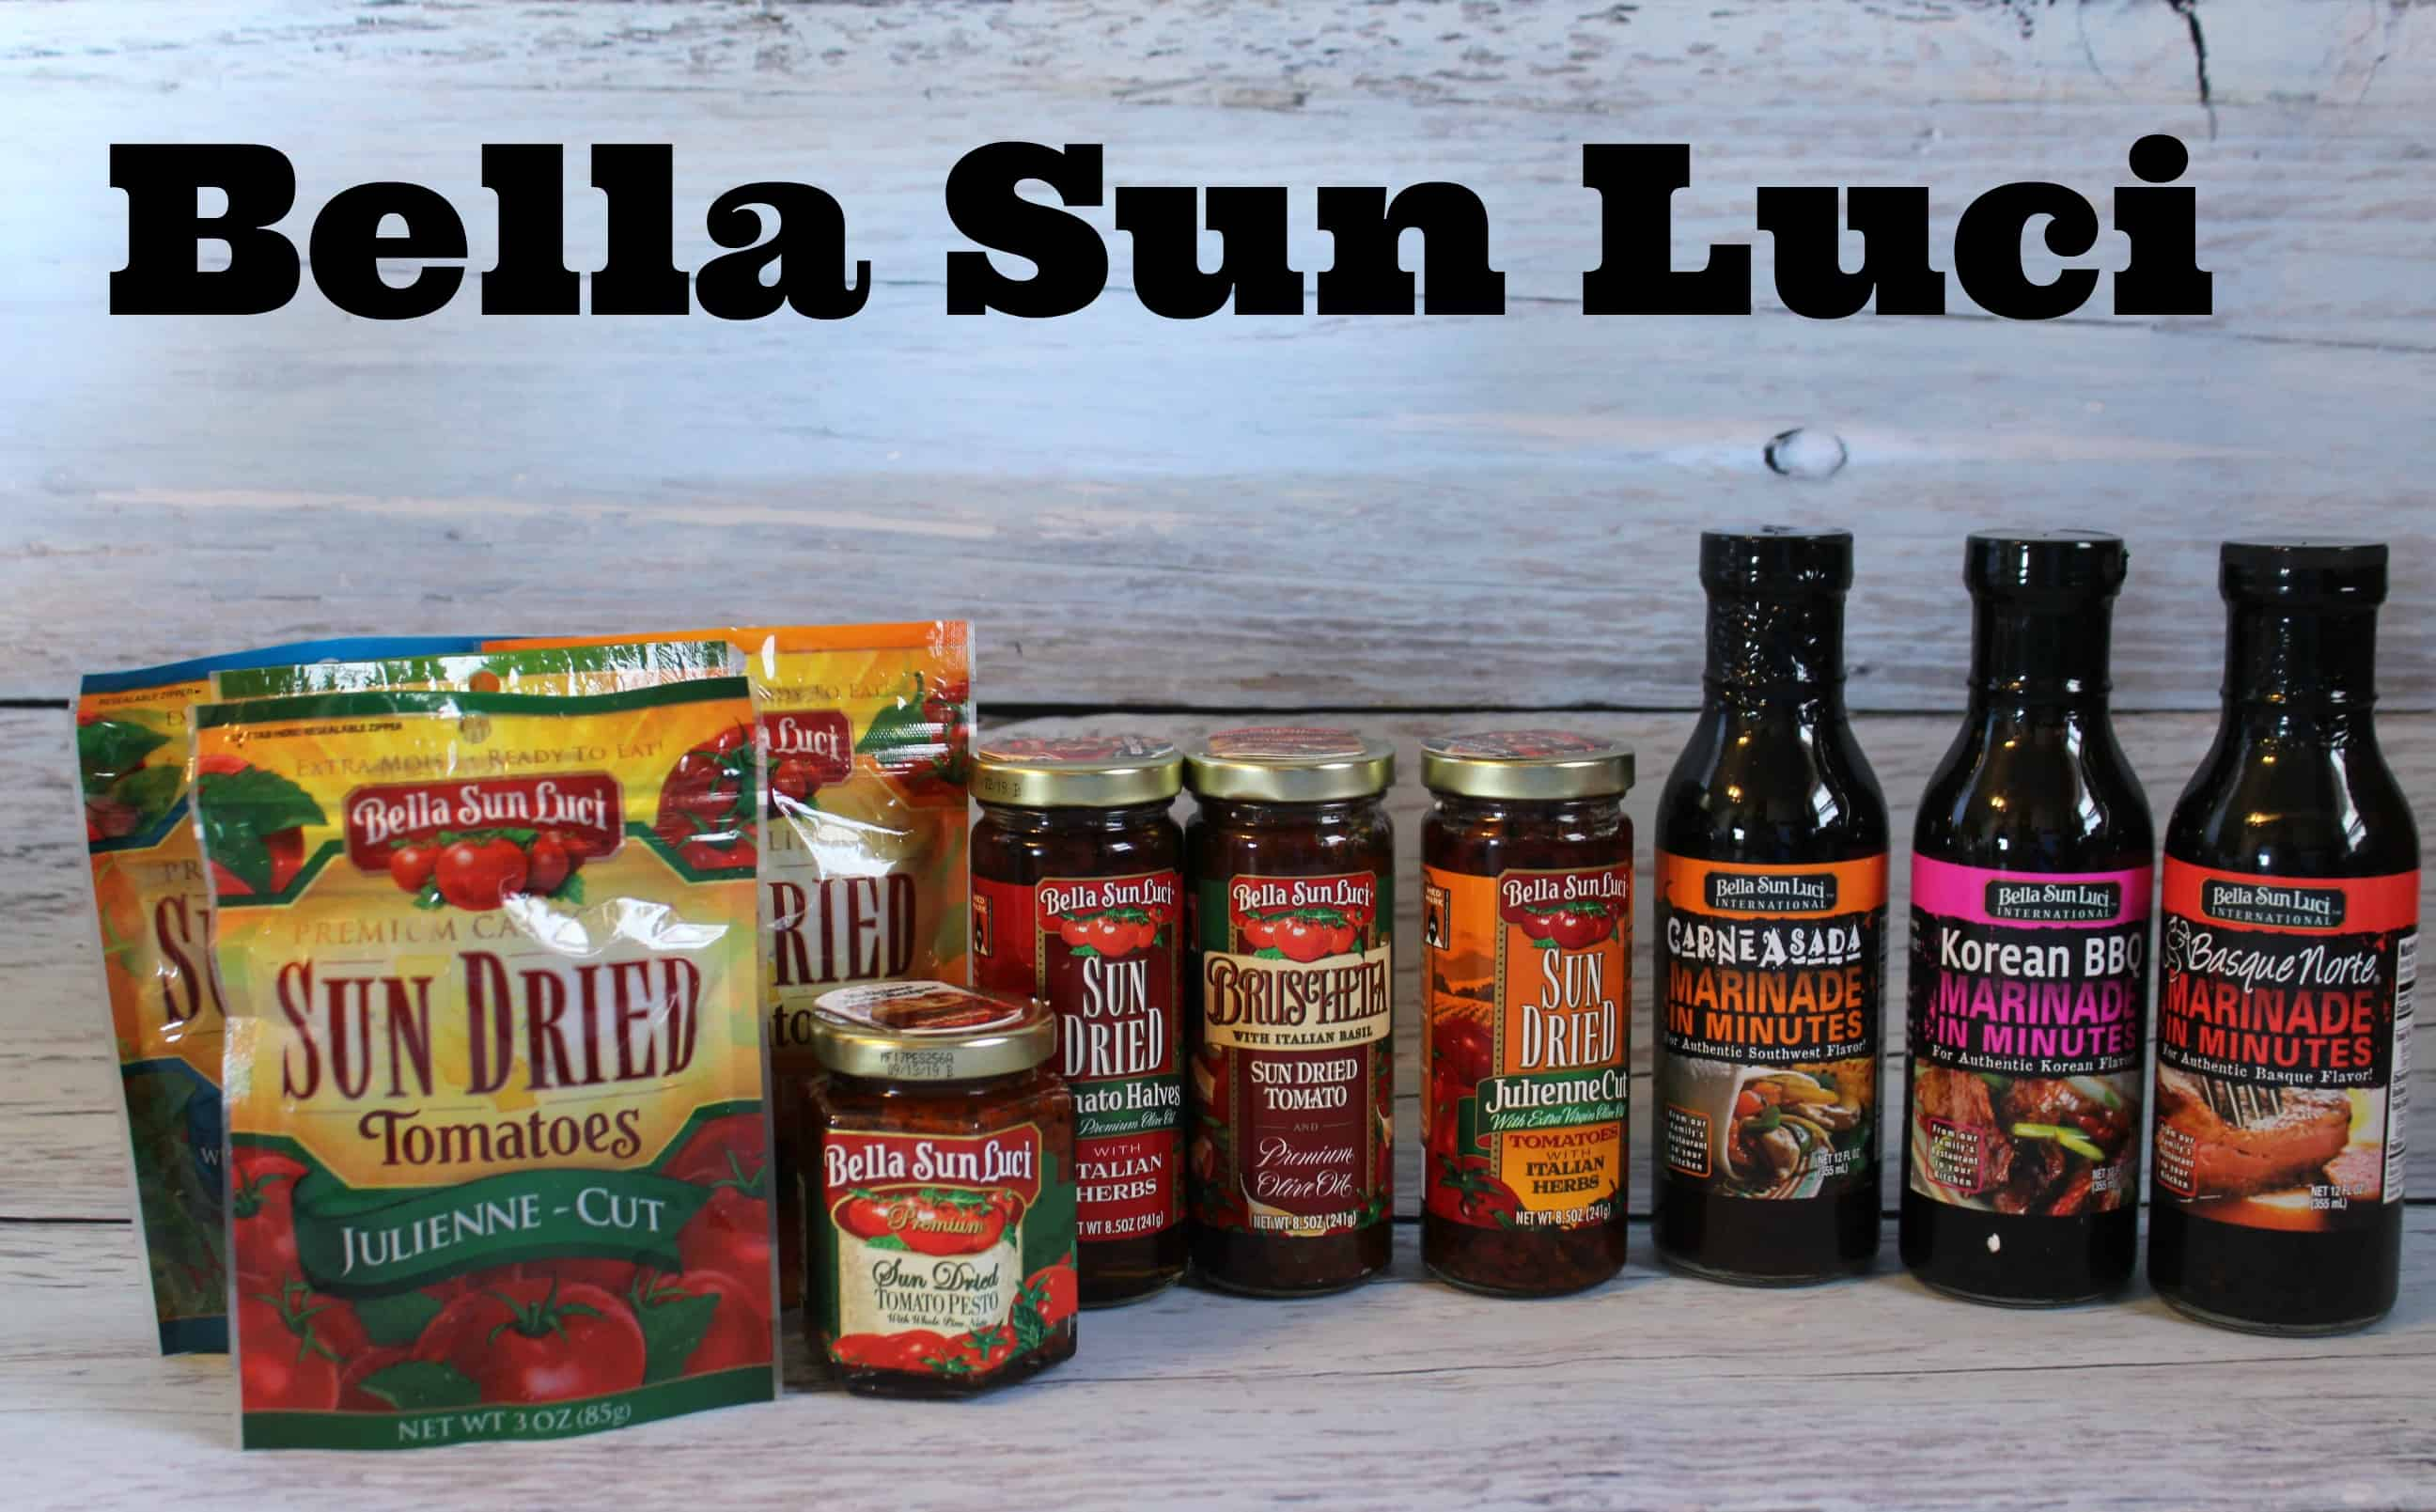 Bella Sun Luci makes perfect BBQ additions